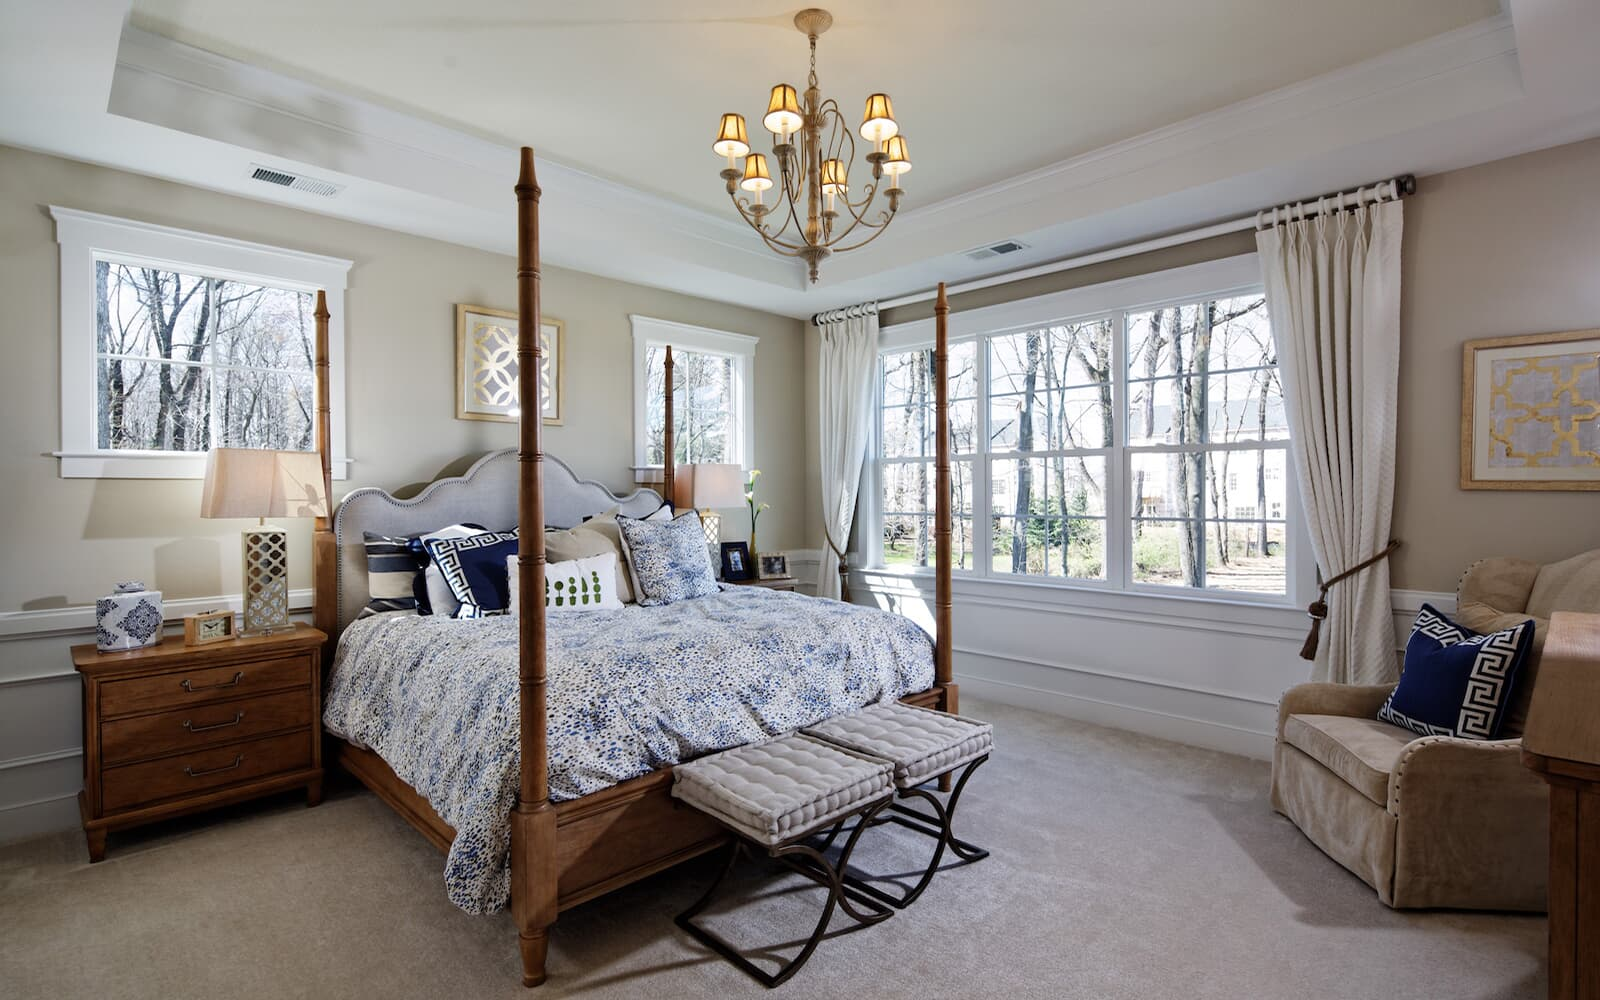 BecknerII-bedroom-single-family-home-potomac-shores-va-potomac-shores-brookfield-residential